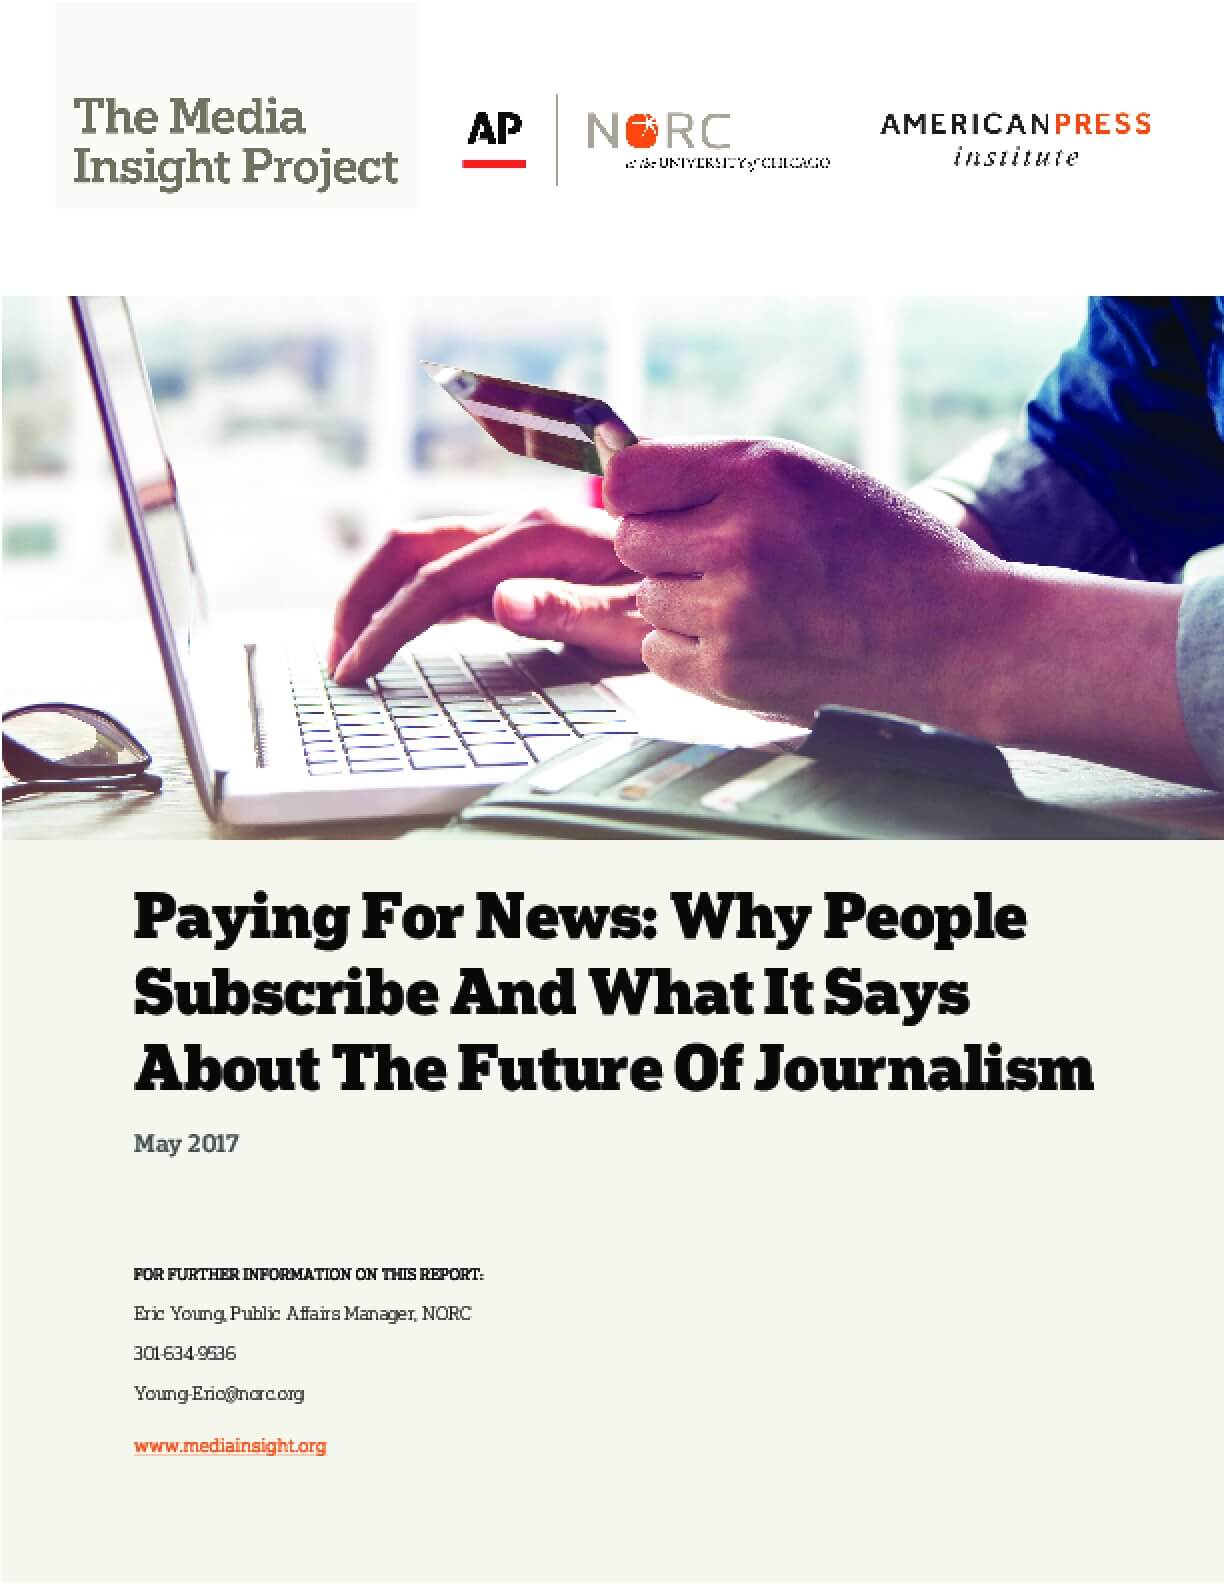 Paying for News: Why People Subscribe and What it Says about the Future of Journalism